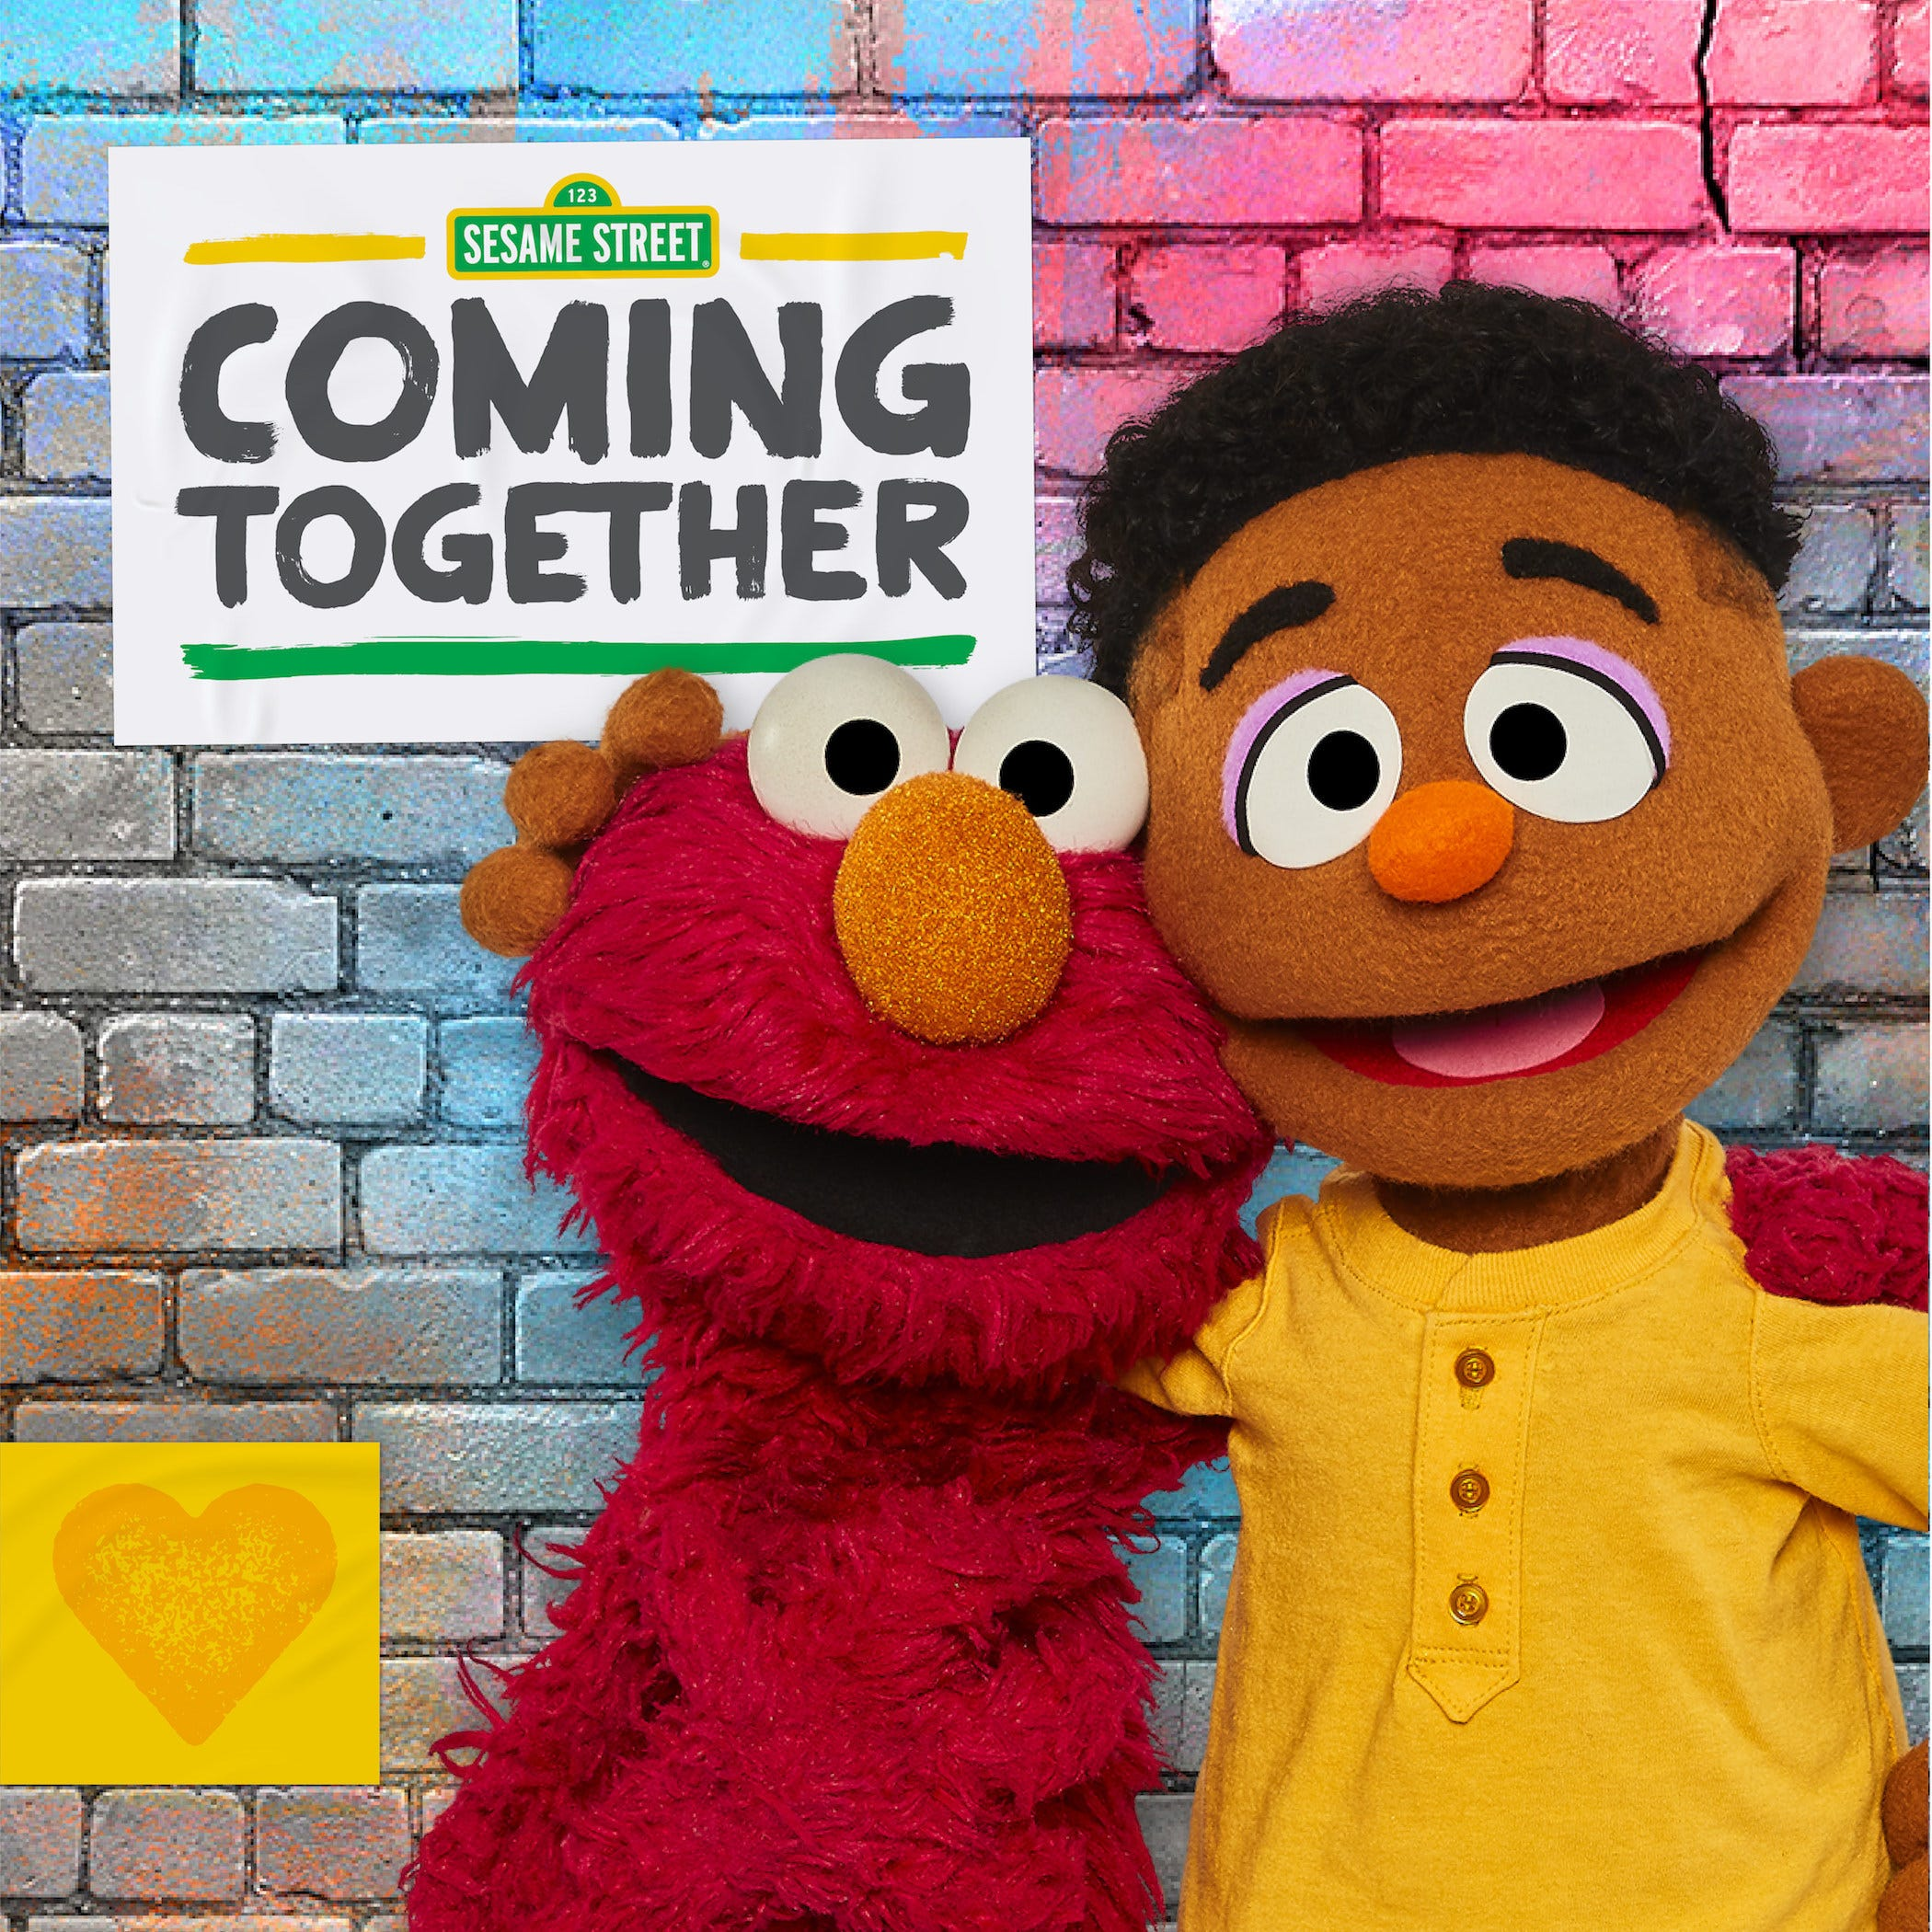 Sesame Street' introduces two Black muppets to discuss race